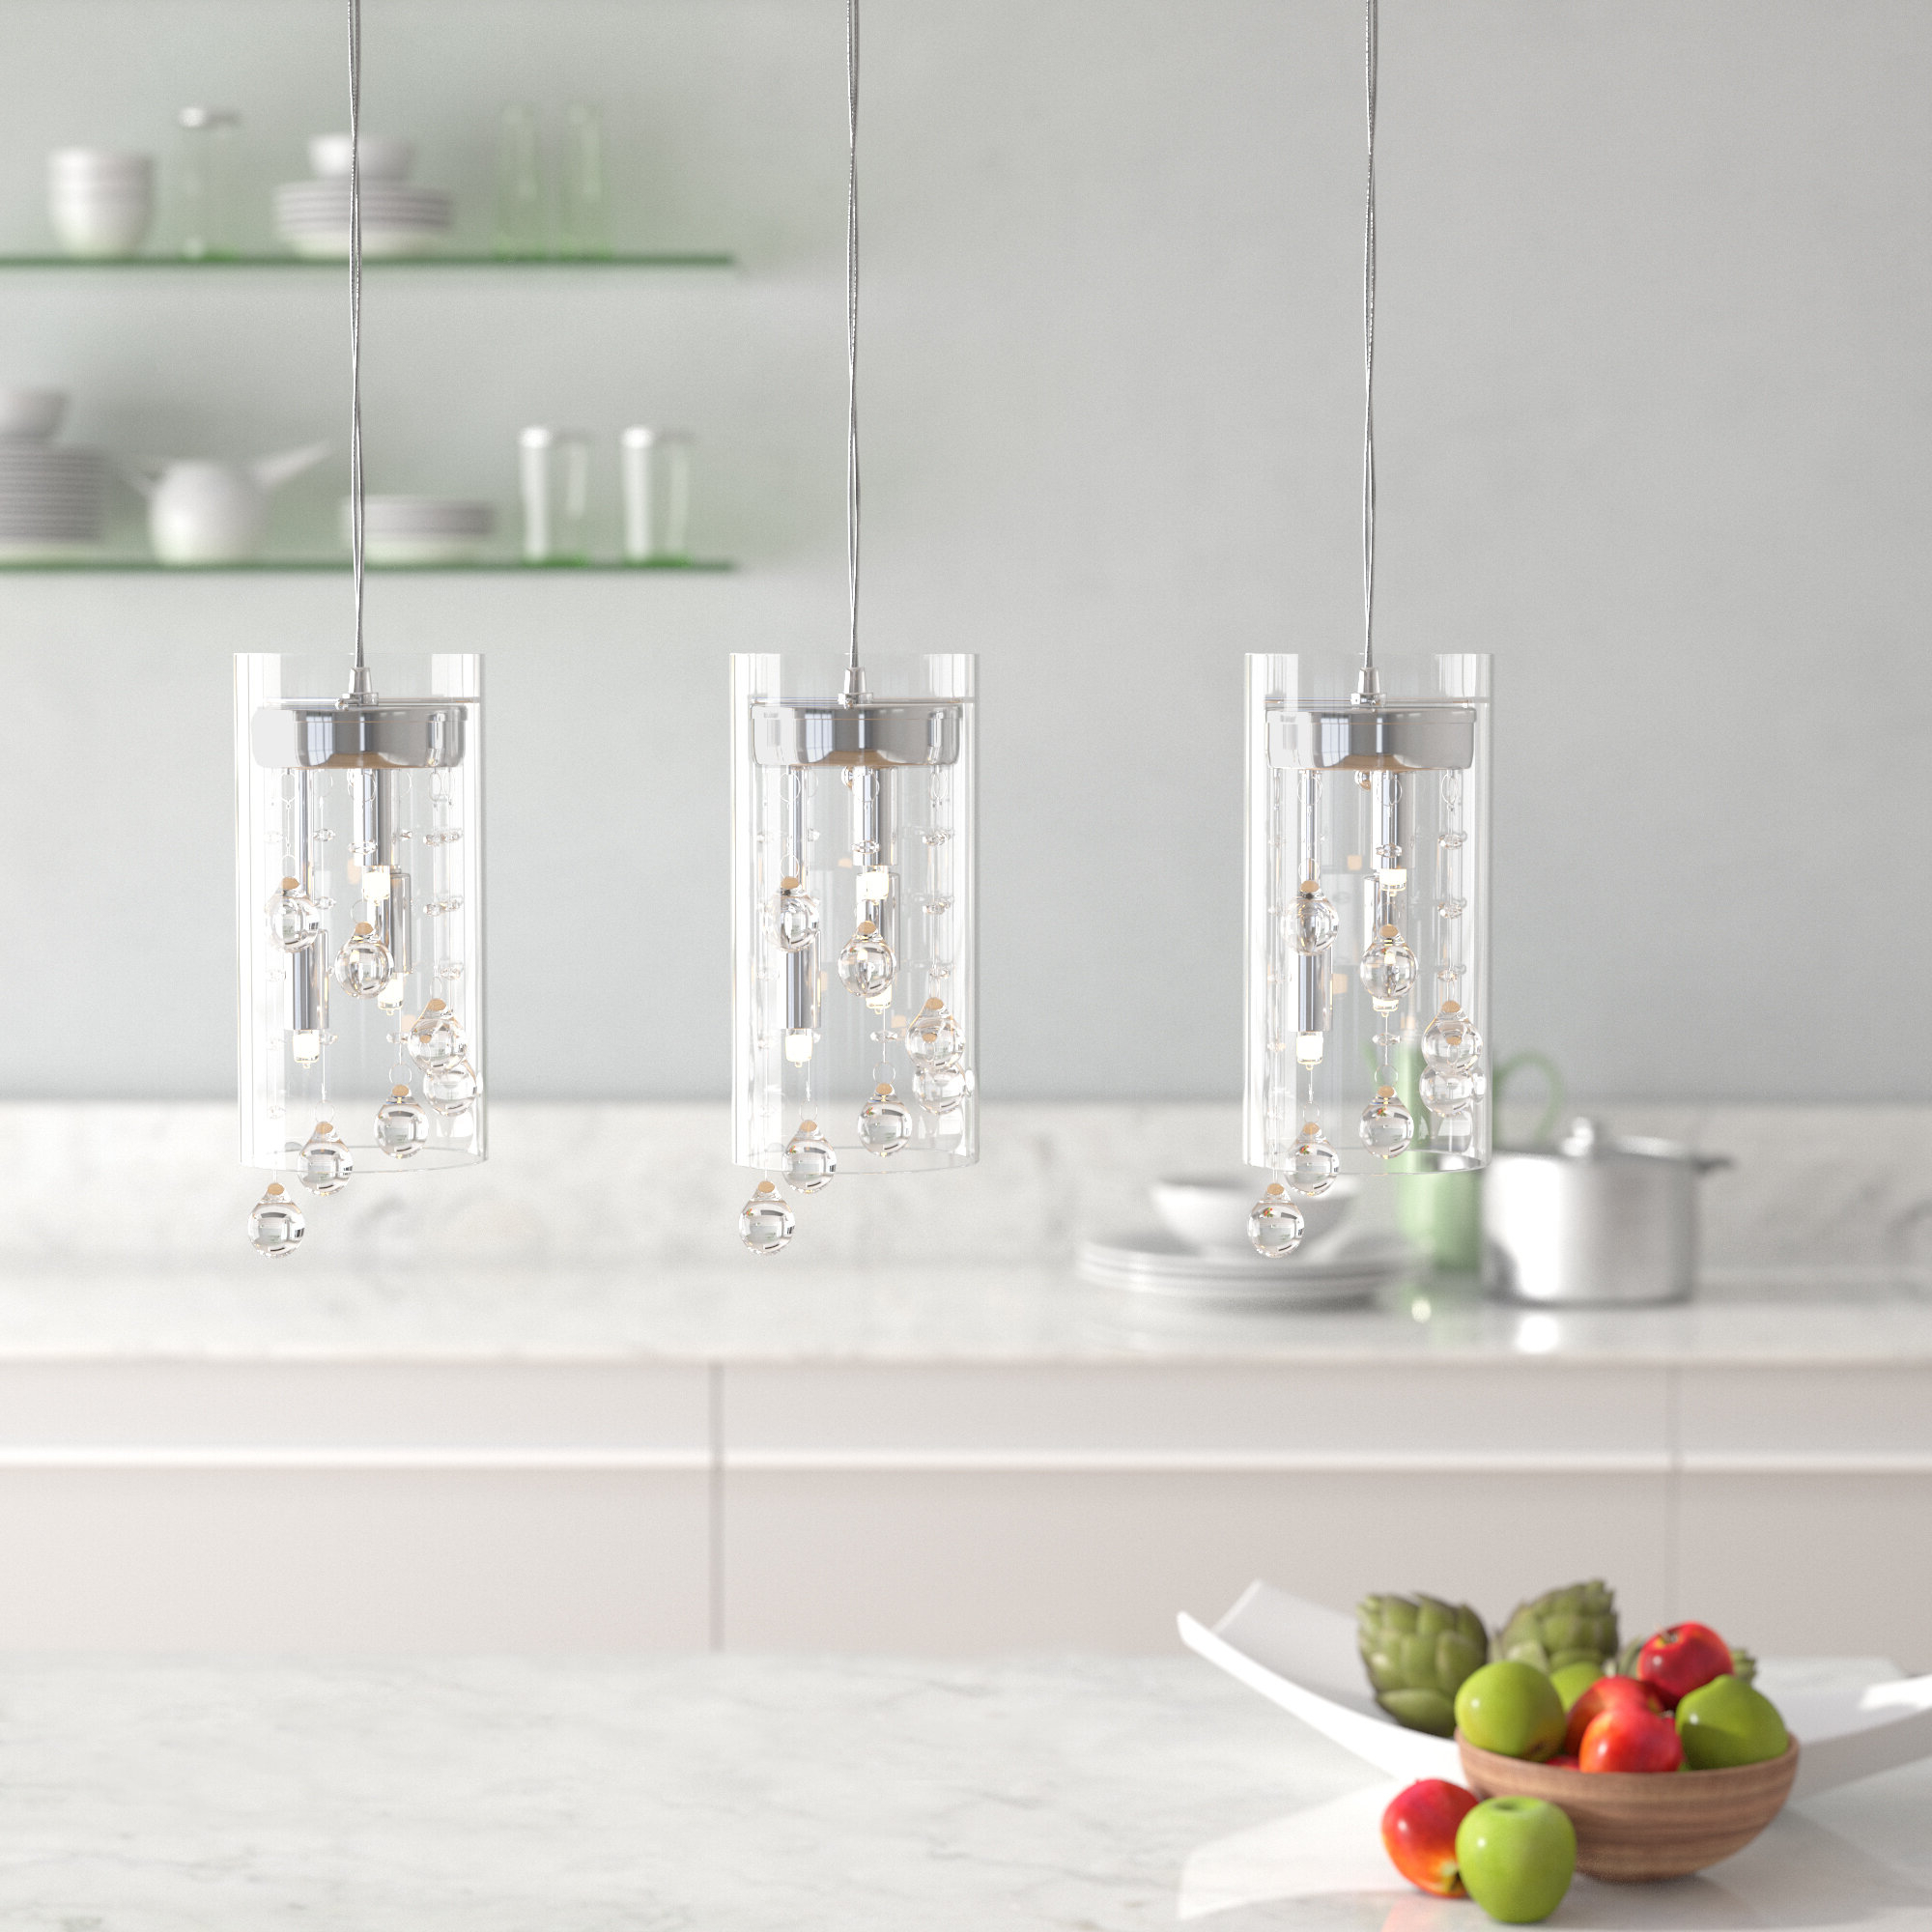 Widely Used Isabel 3 Light Kitchen Island Cylinder Pendant With Ariel 3 Light Kitchen Island Dome Pendants (View 24 of 25)